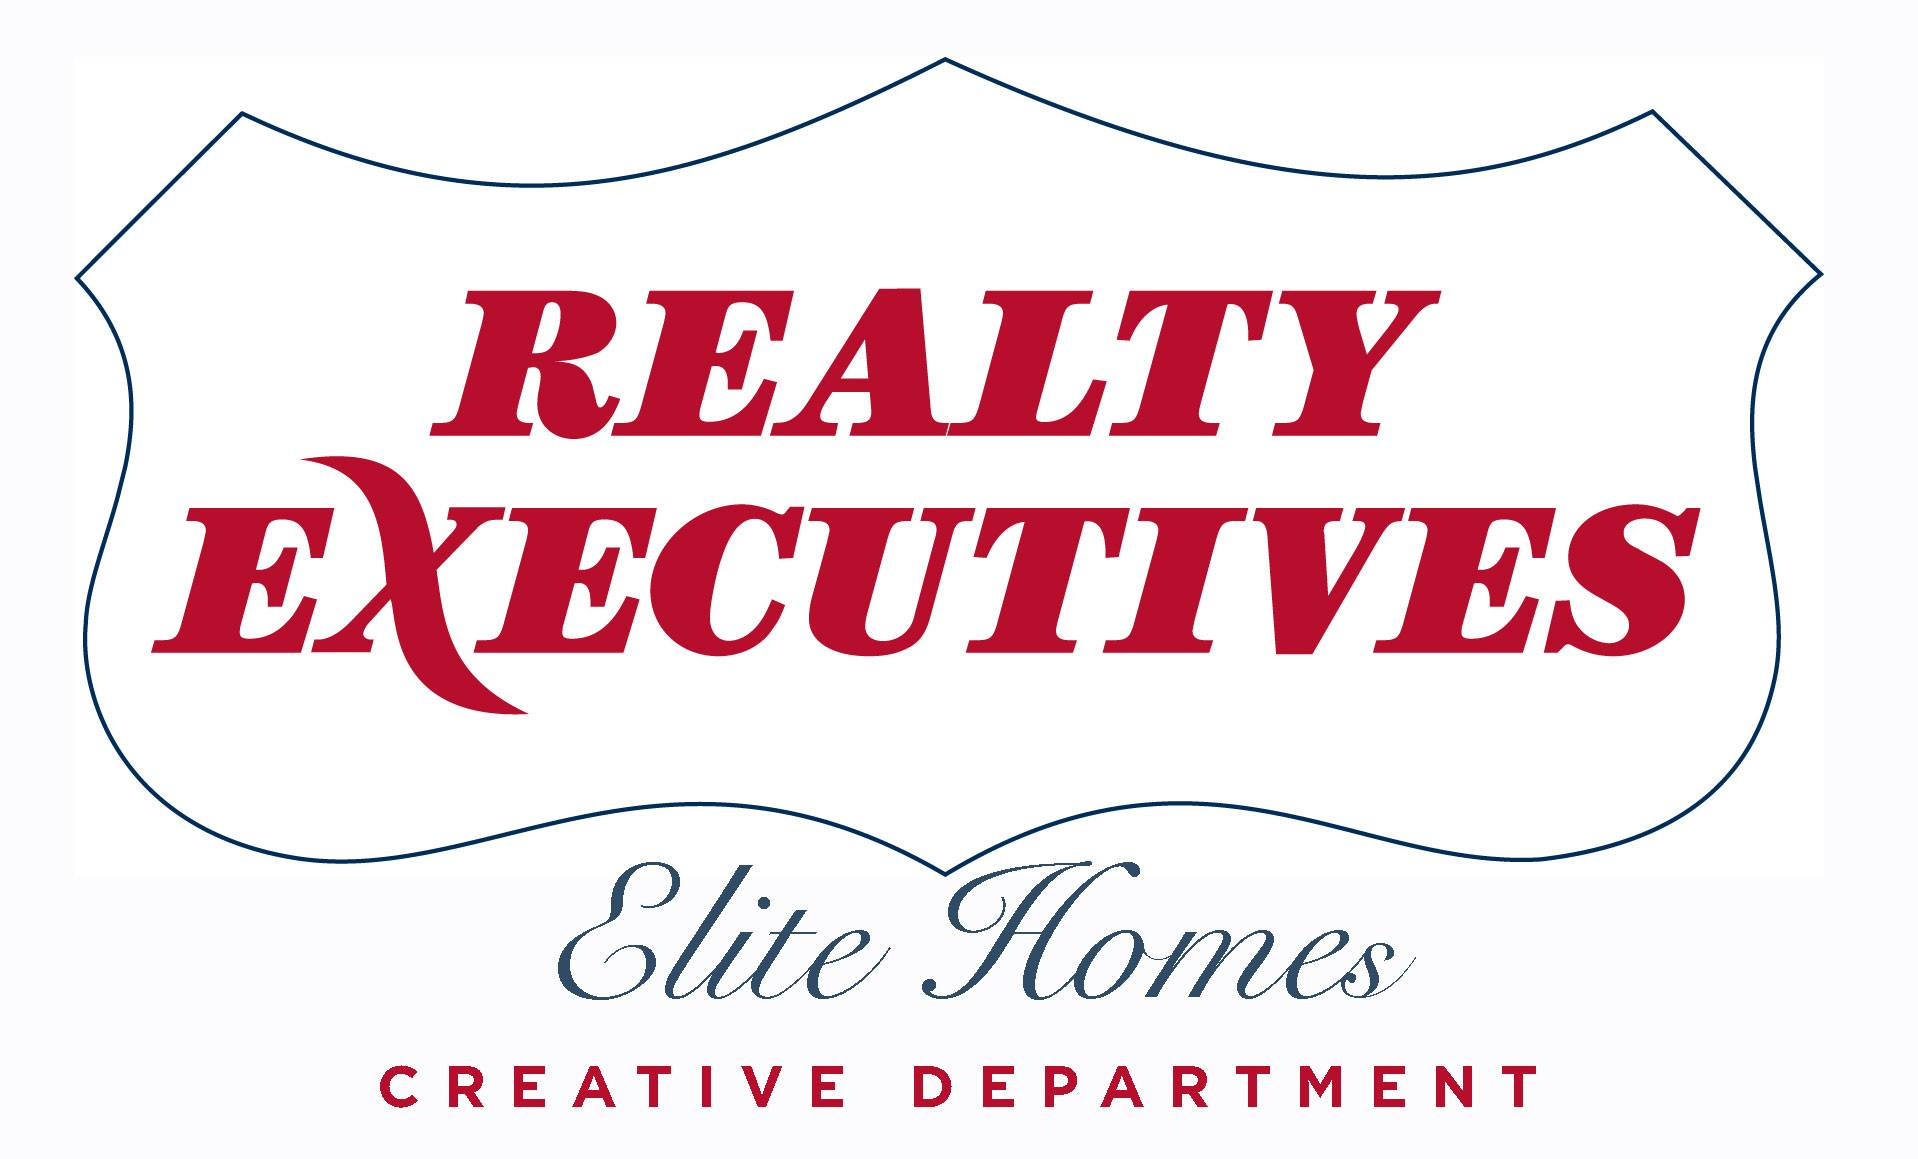 Realty Executives Elite Homes The Most Creative Real Estate Office in Northern NJ